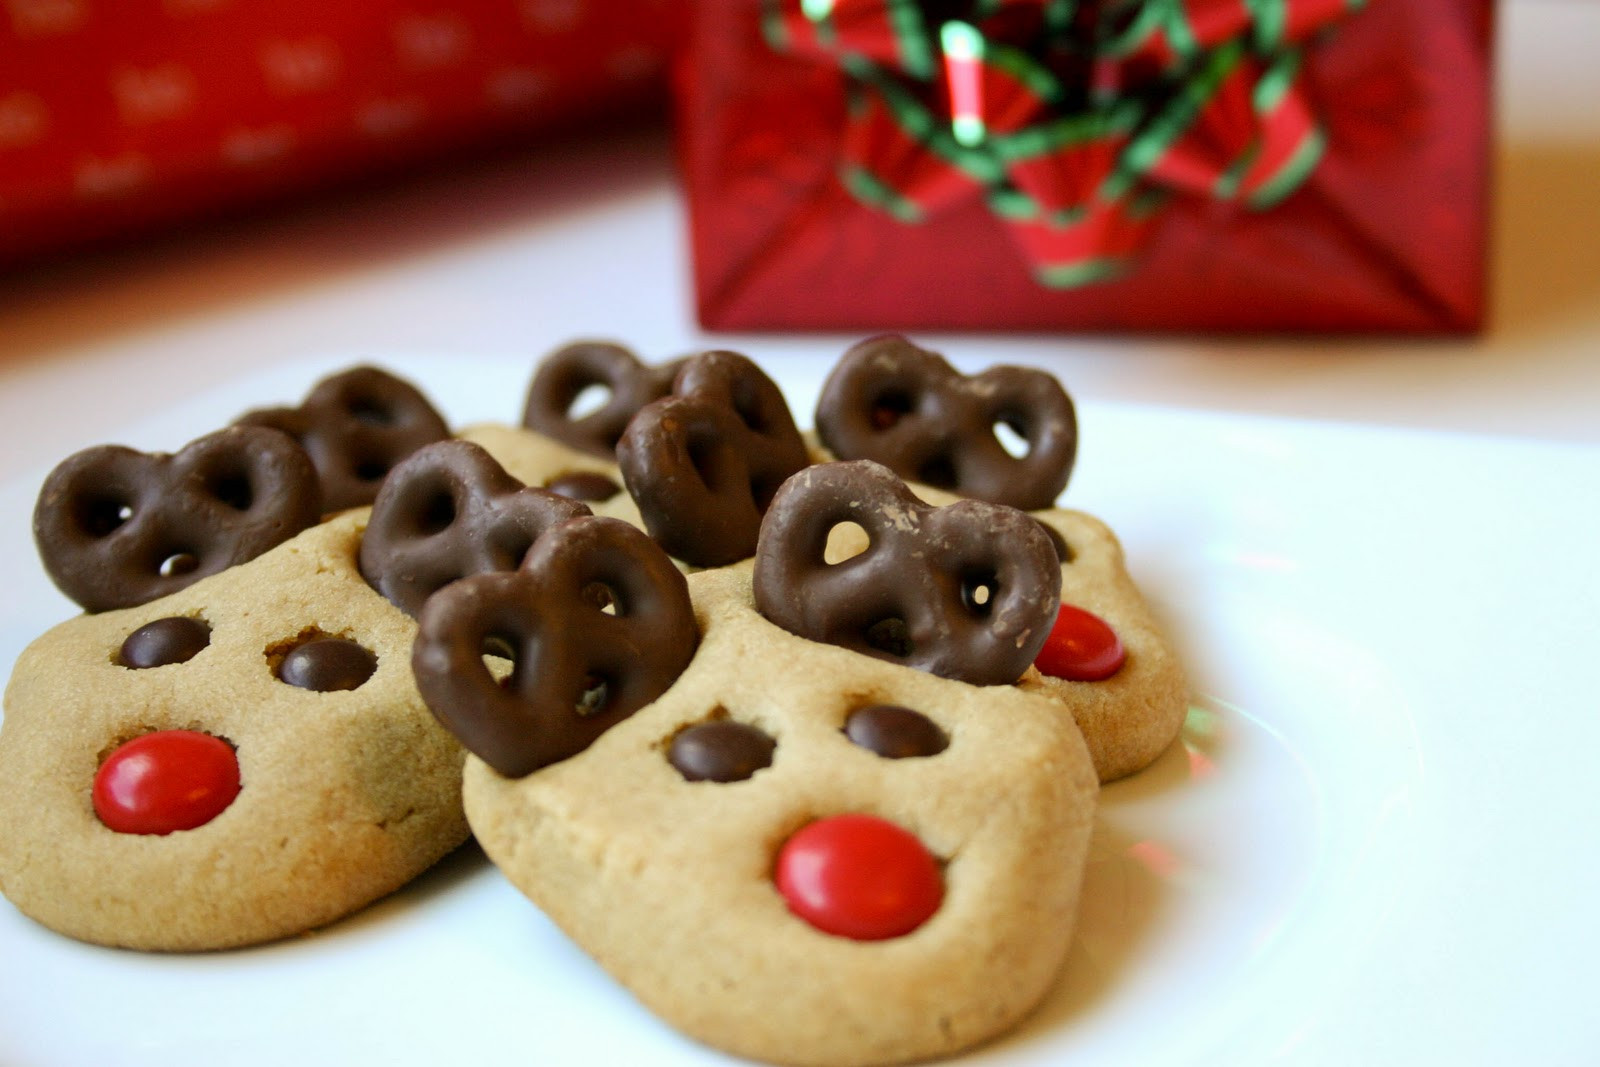 Cute Christmas Baking Ideas  Reindeer Cookies Recipe